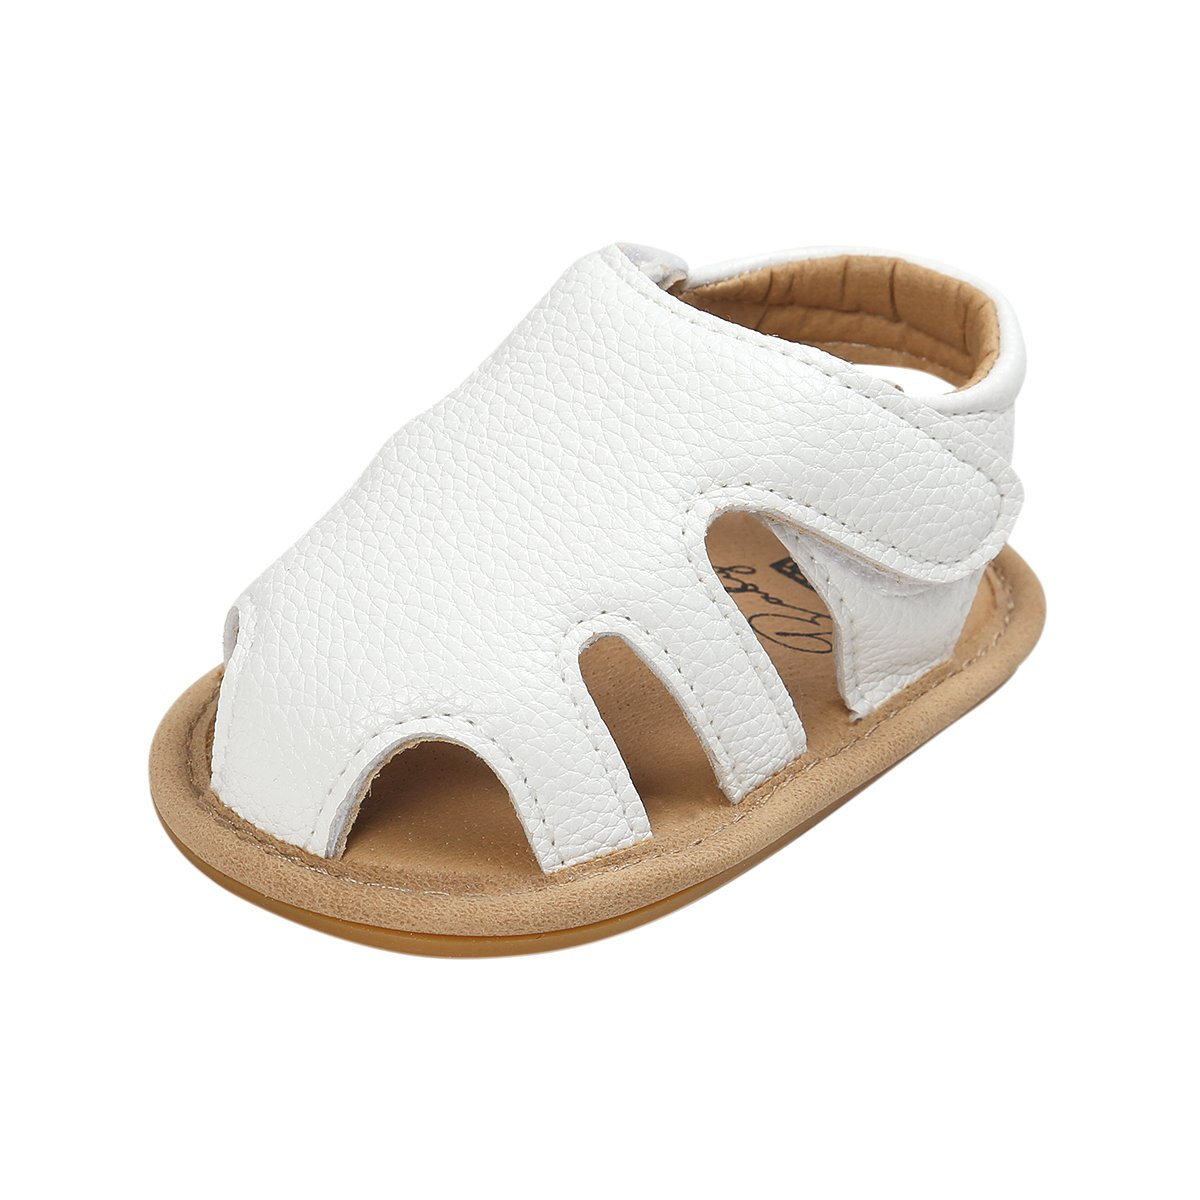 HLM Baby Shoes Sandals for Girl Boys Babies Toddlers Size 6-12 12-18 0-6 5.5 Months H180427LX-1P